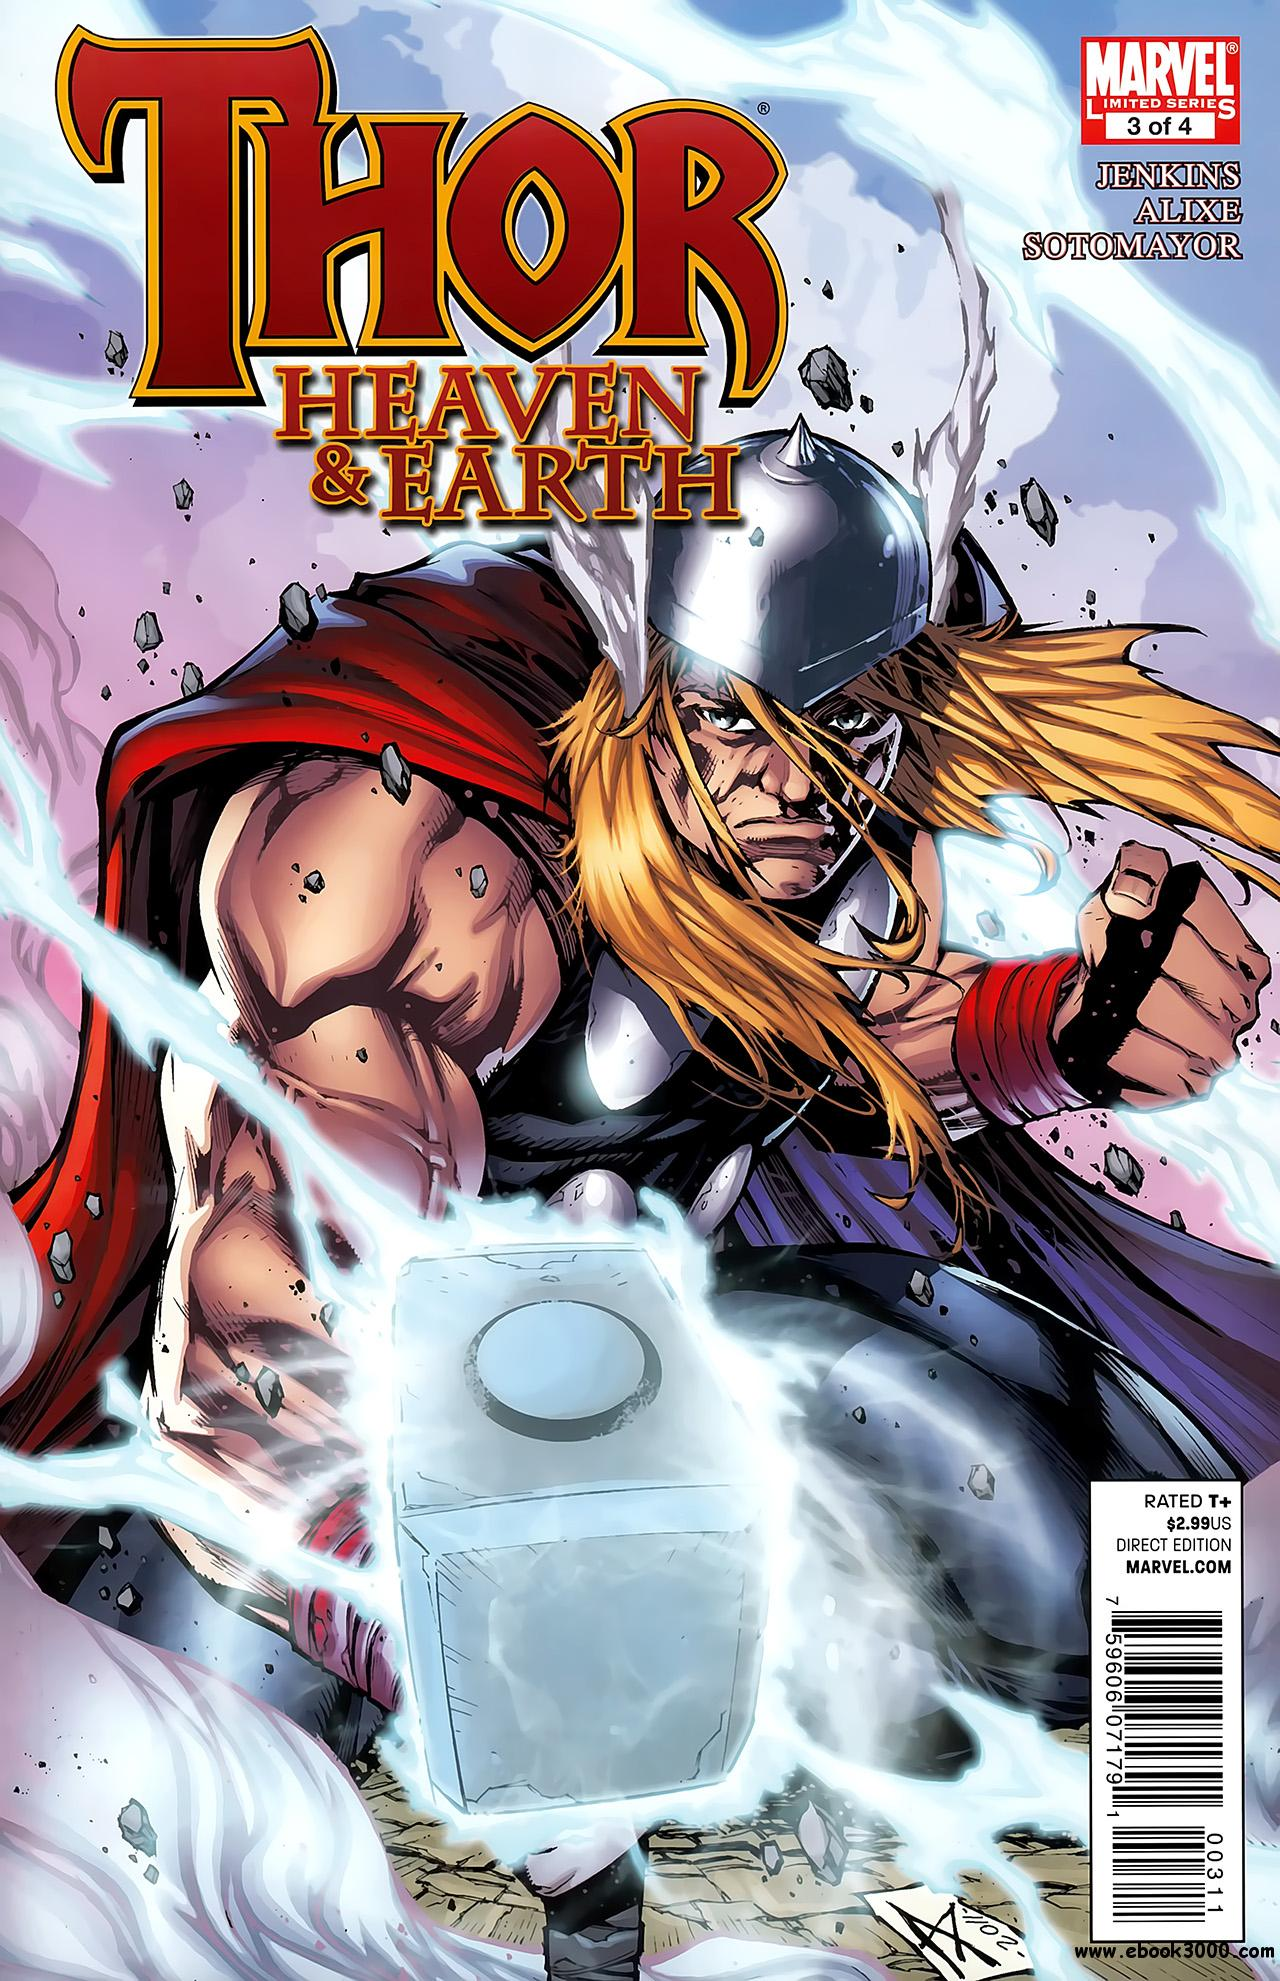 Thor - Heaven & Earth #3 (of 04) (2011) free download